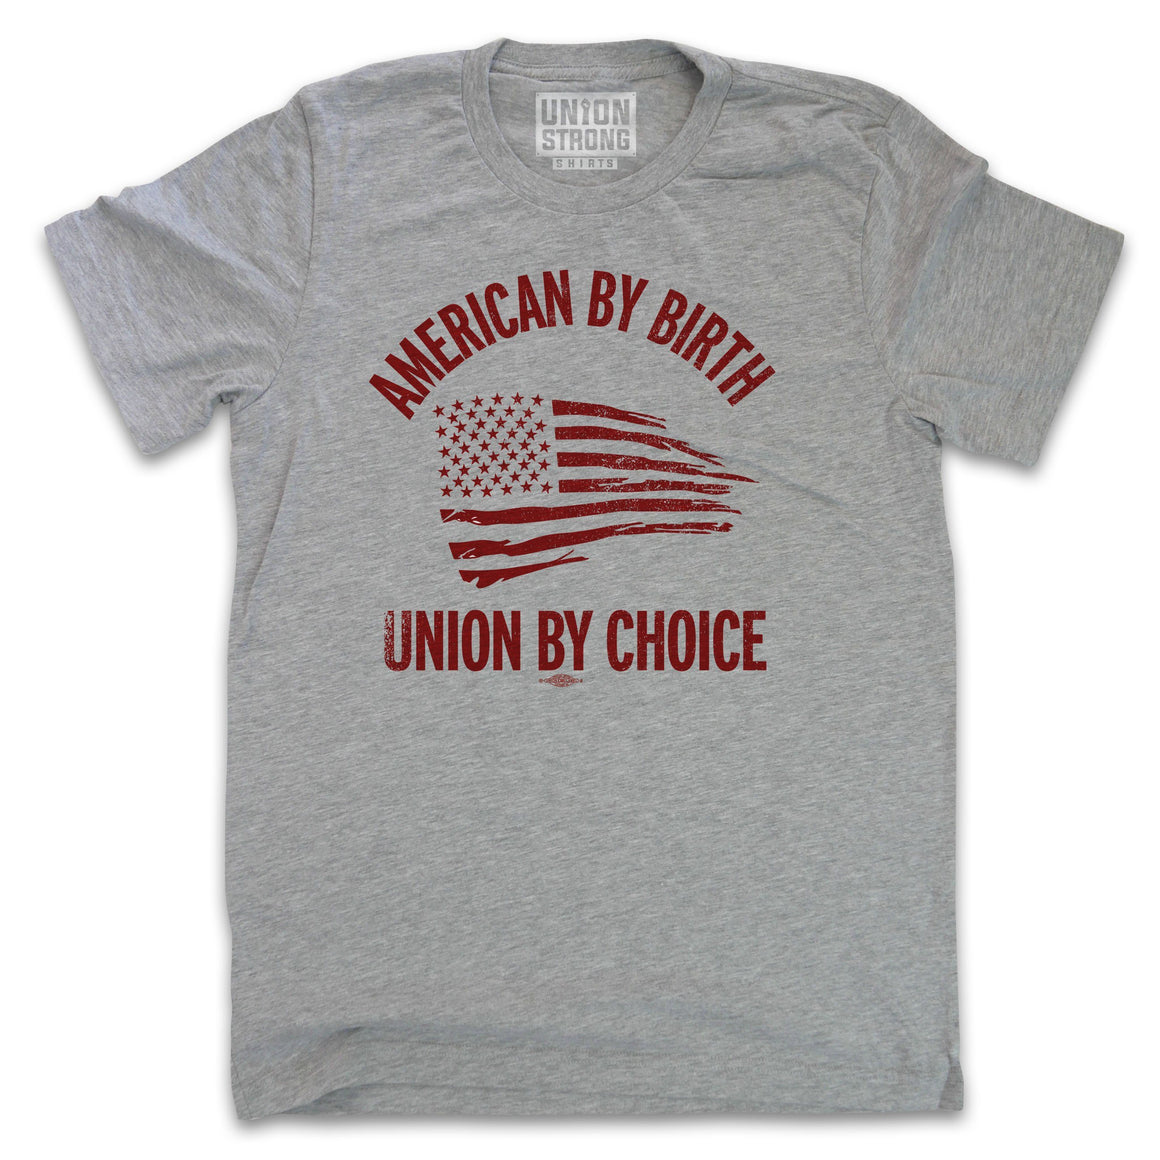 American By Birth, Union By Choice Shirts unionstrongshirts